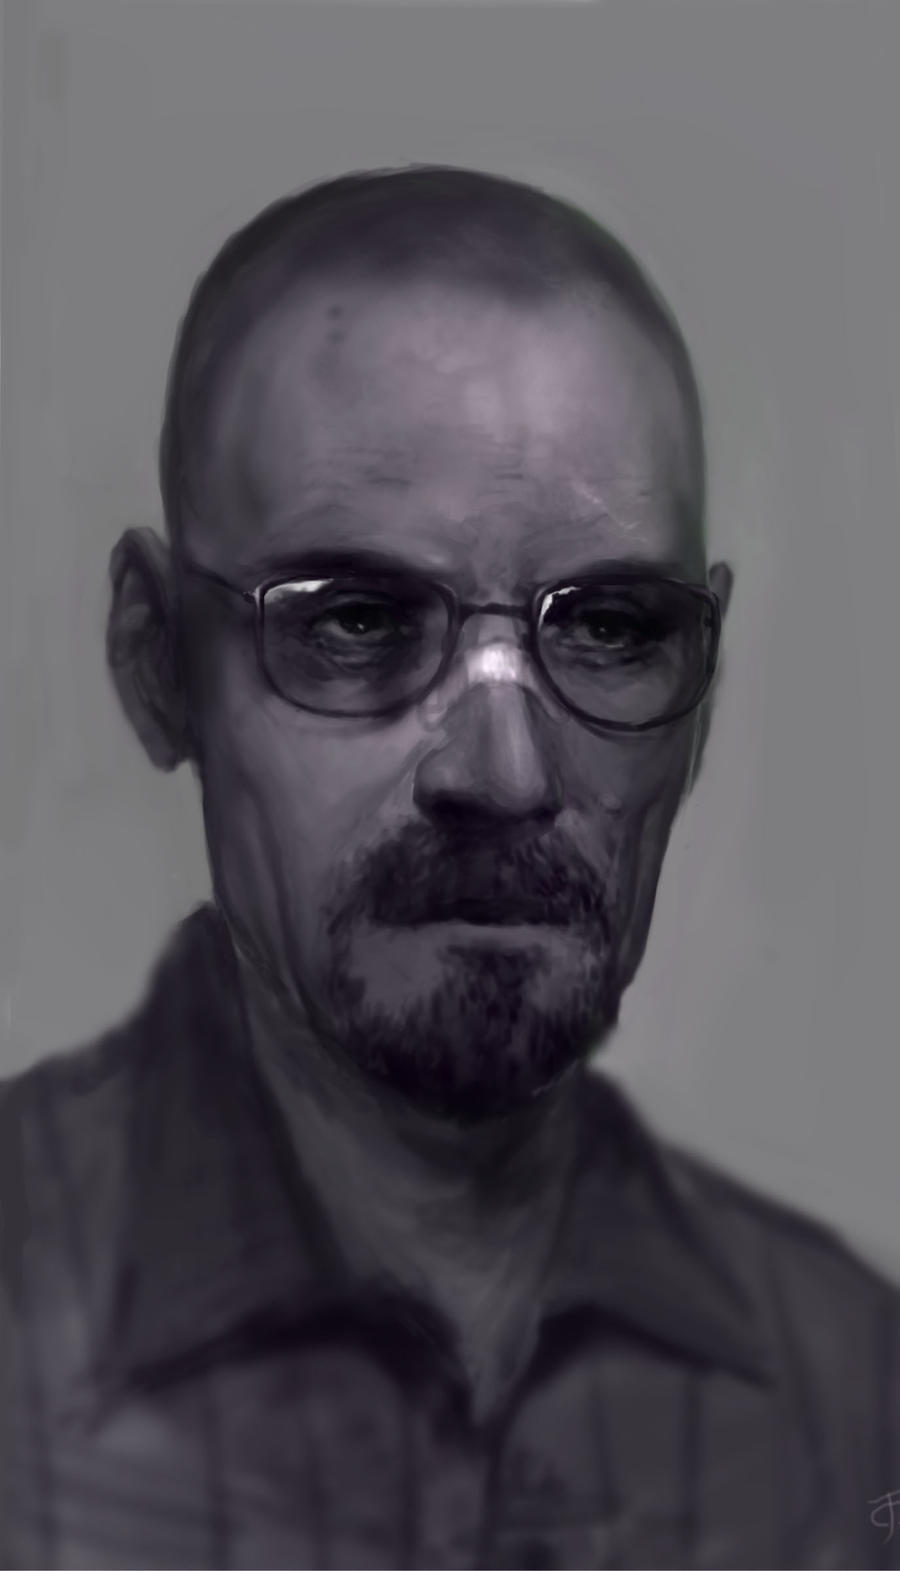 Heisenberg by ChrisJRees